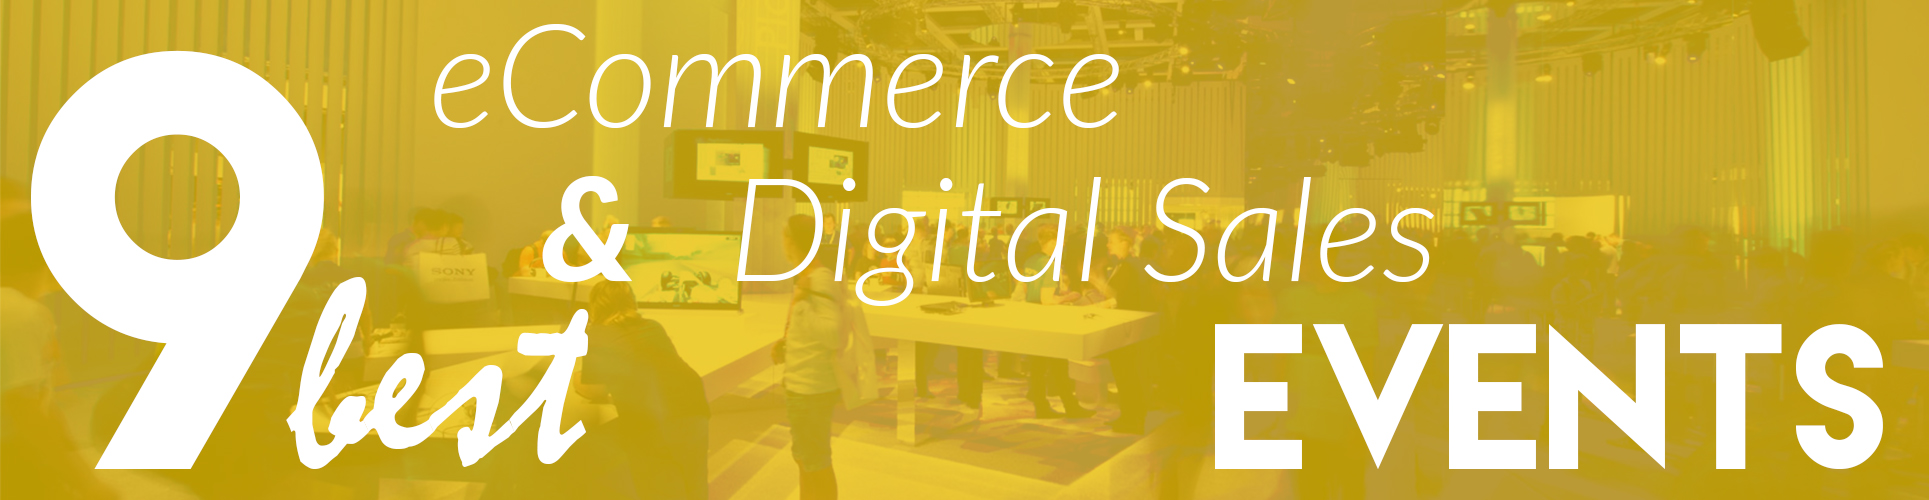 9 Best eCommerce & Digital Sales Events To Attend At 2016 Fall